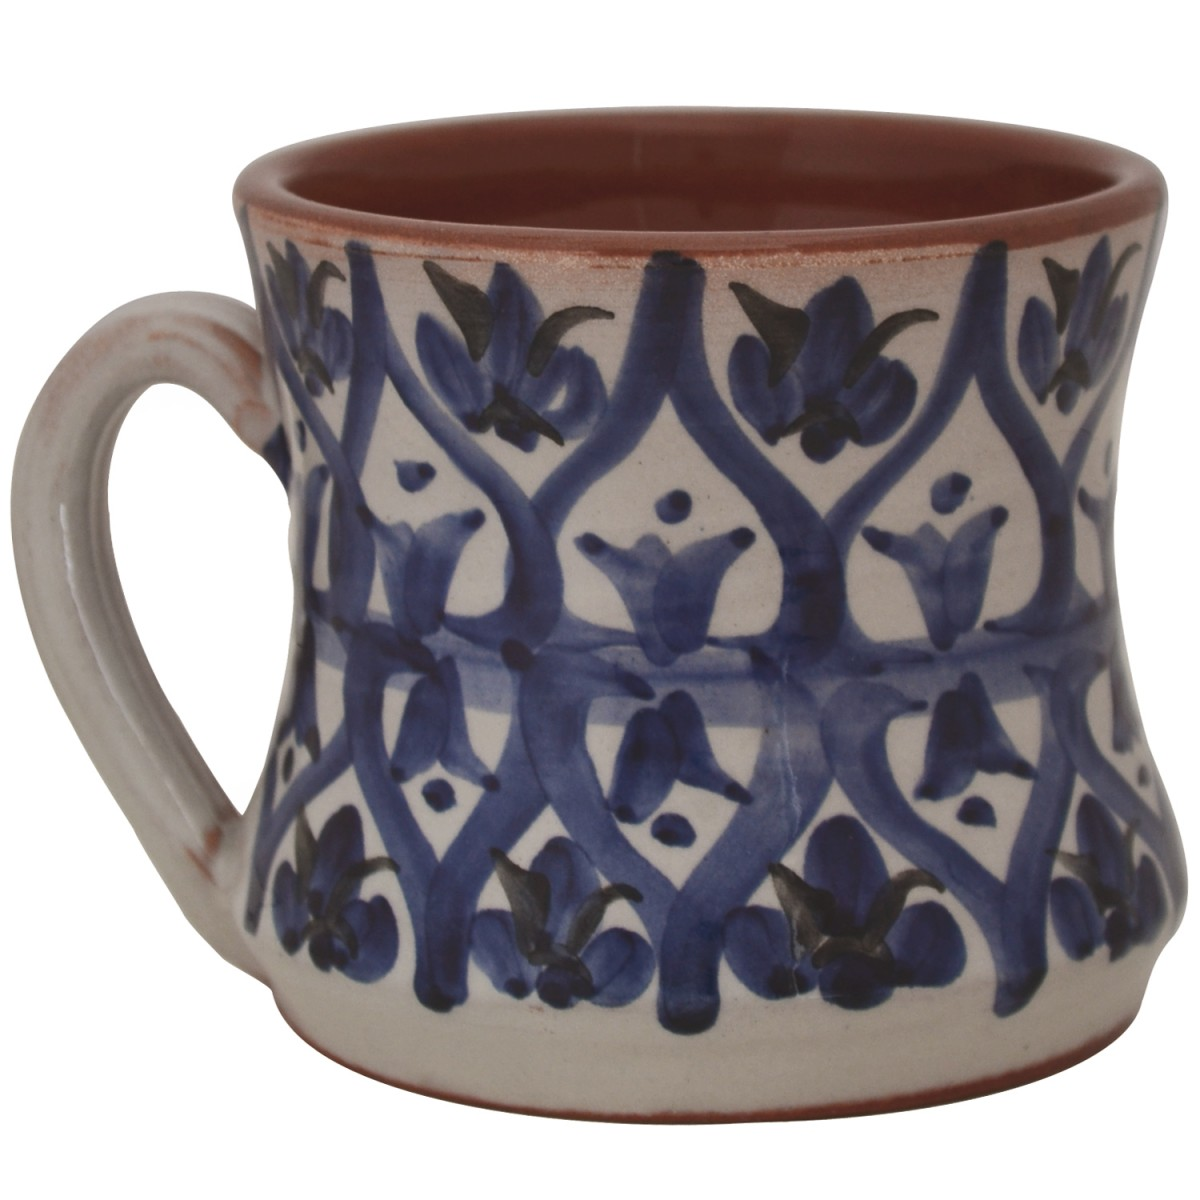 Tea Mugs For Sale Pottery Coffee Mugs For Sale Hourglass Shape